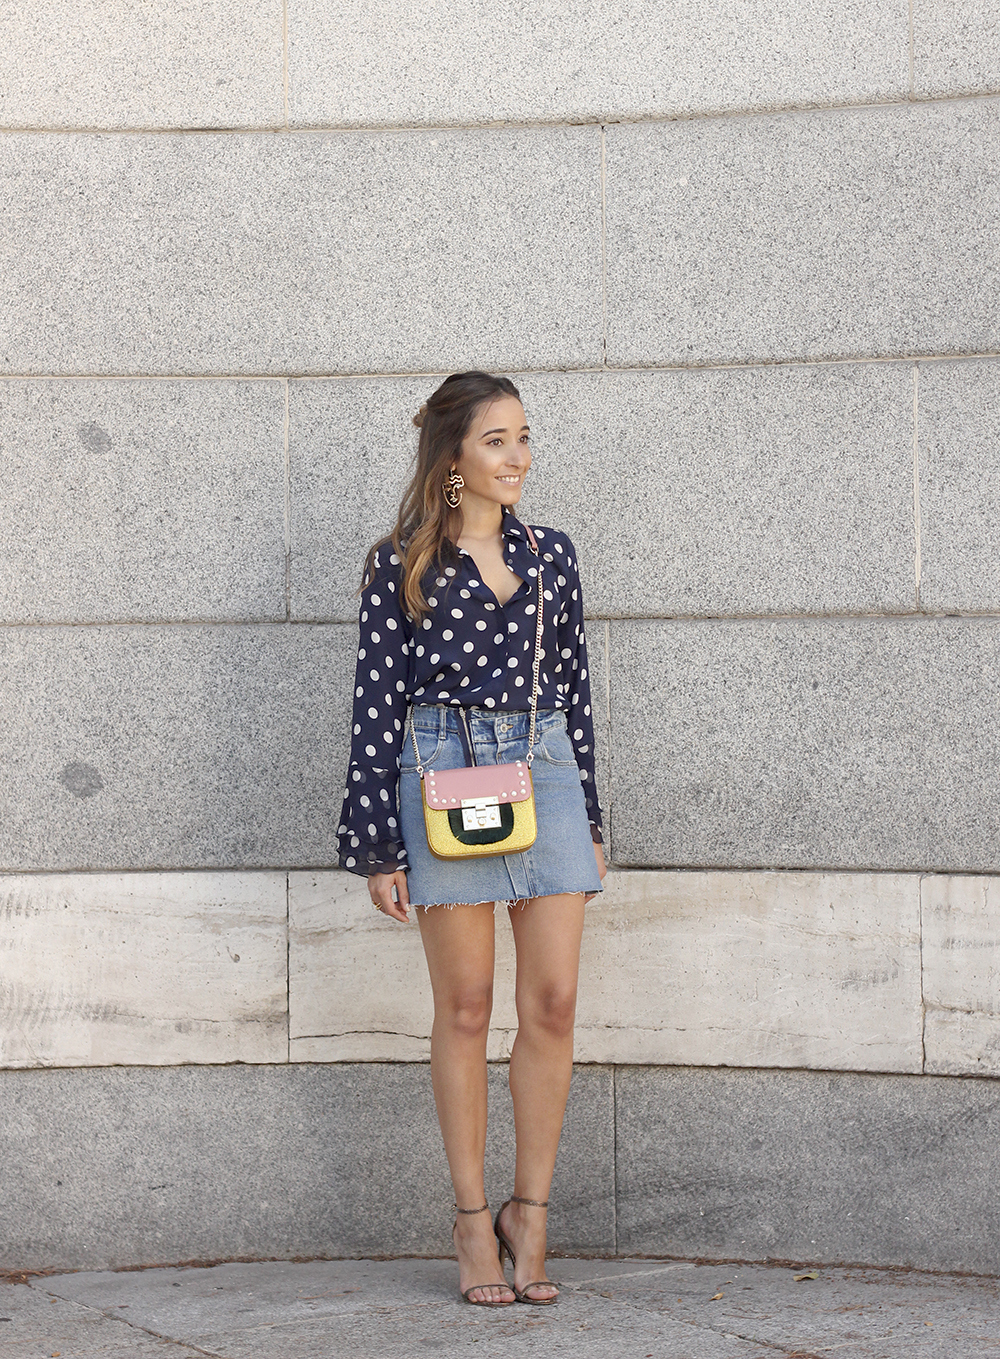 Polka dots shirt uterqüe bolso denim skirt girl outfit fashion01